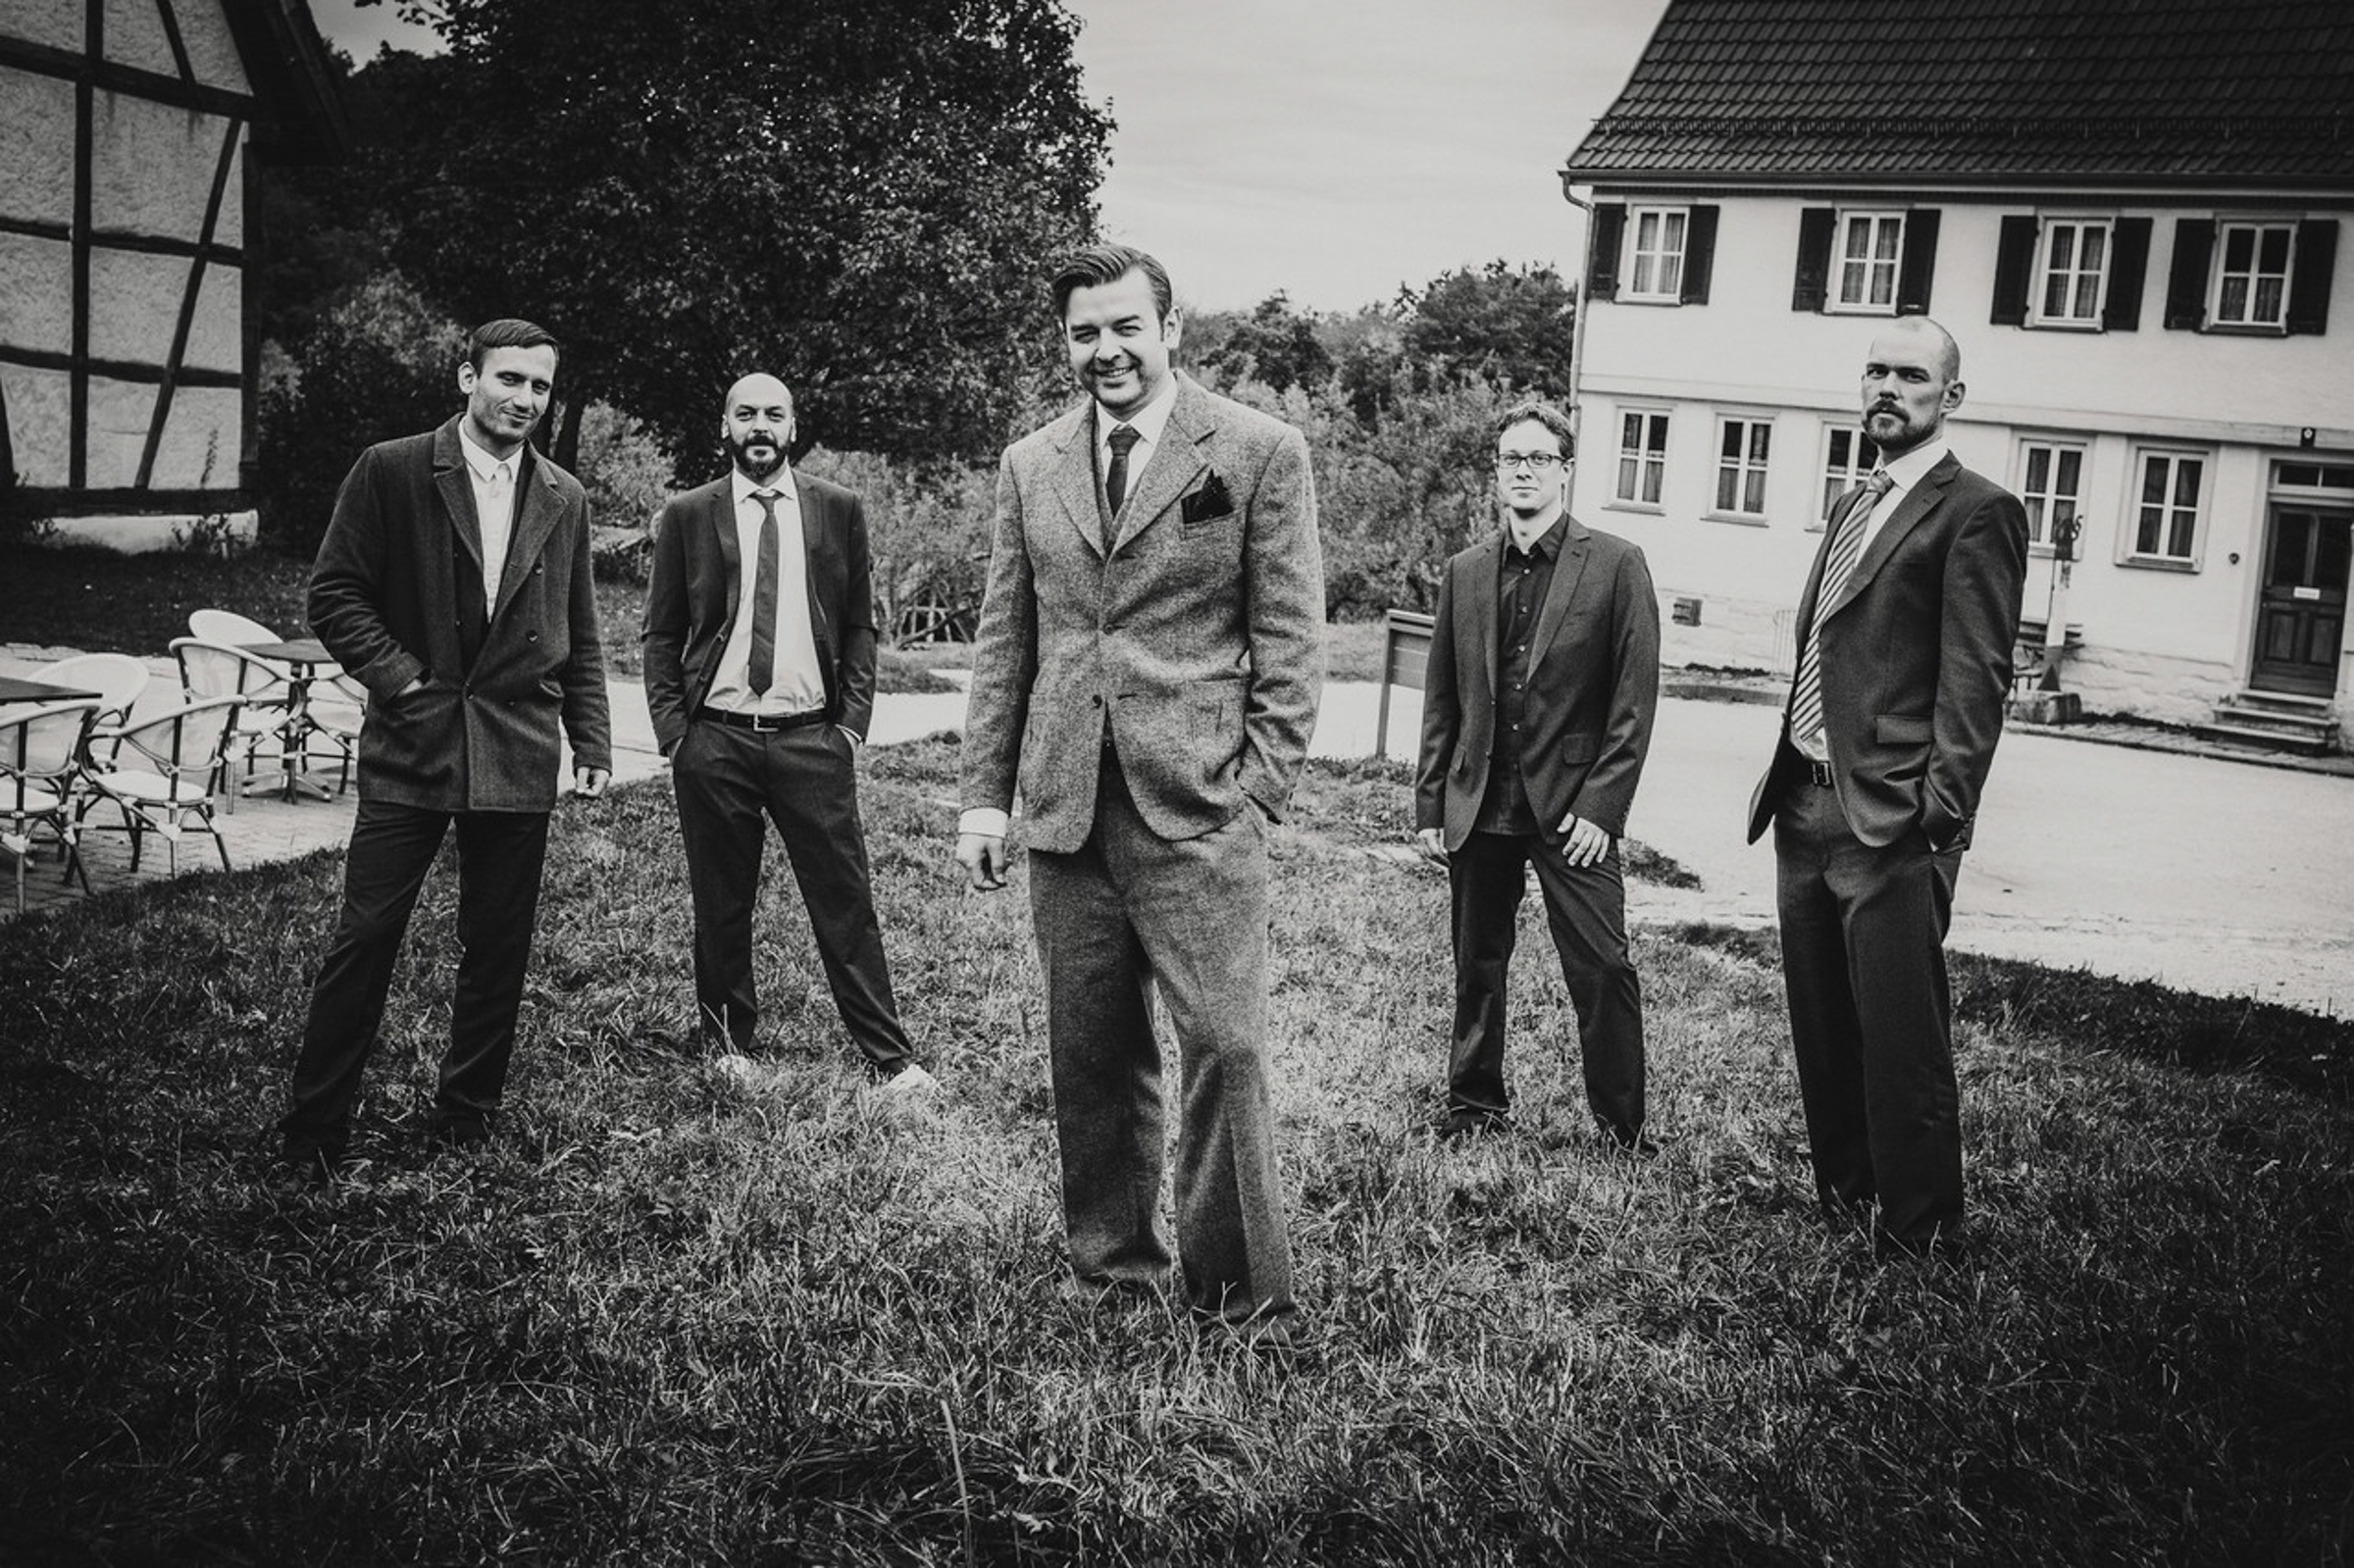 groom-and-groomsmen-black-and-white-portrait-photo-by-fineart-weddings-photography